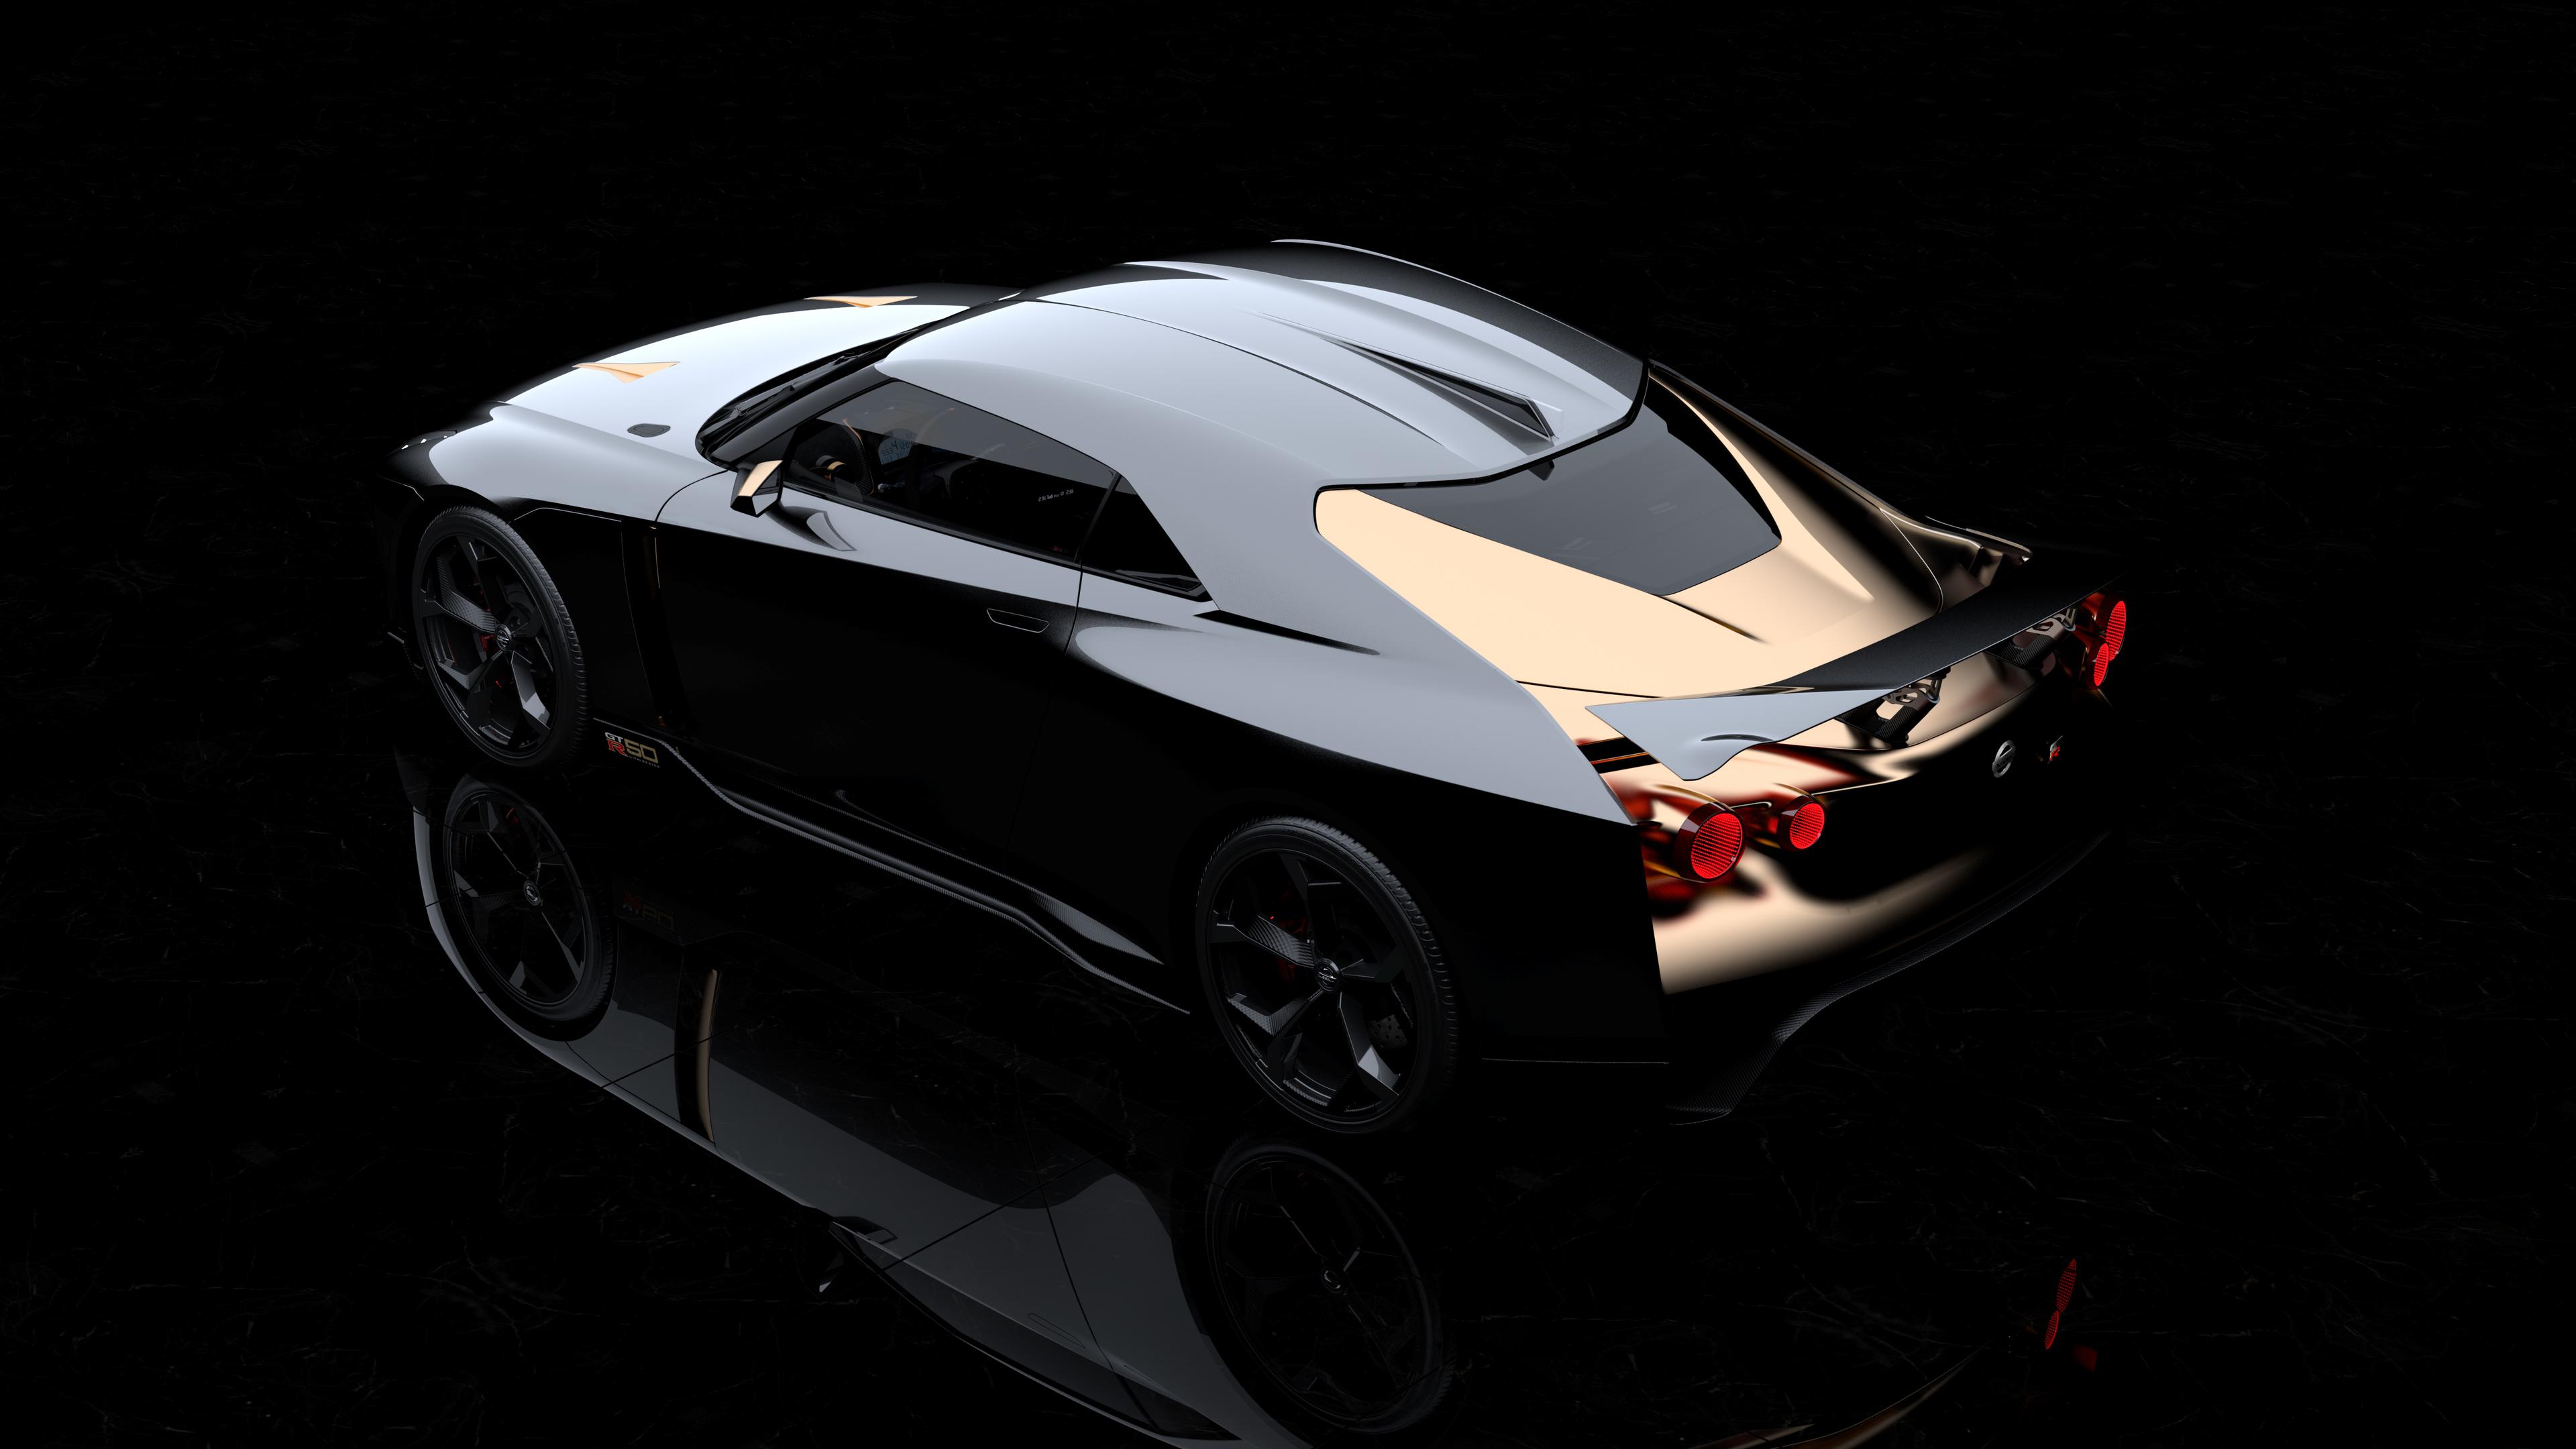 nissan gt r50 concept 2018 ultra limited rear 1539112233 - Nissan GT R50 Concept 2018 Ultra Limited Rear - nissan wallpapers, nissan gt r50 wallpapers, hd-wallpapers, concept cars wallpapers, 5k wallpapers, 4k-wallpapers, 2018 cars wallpapers